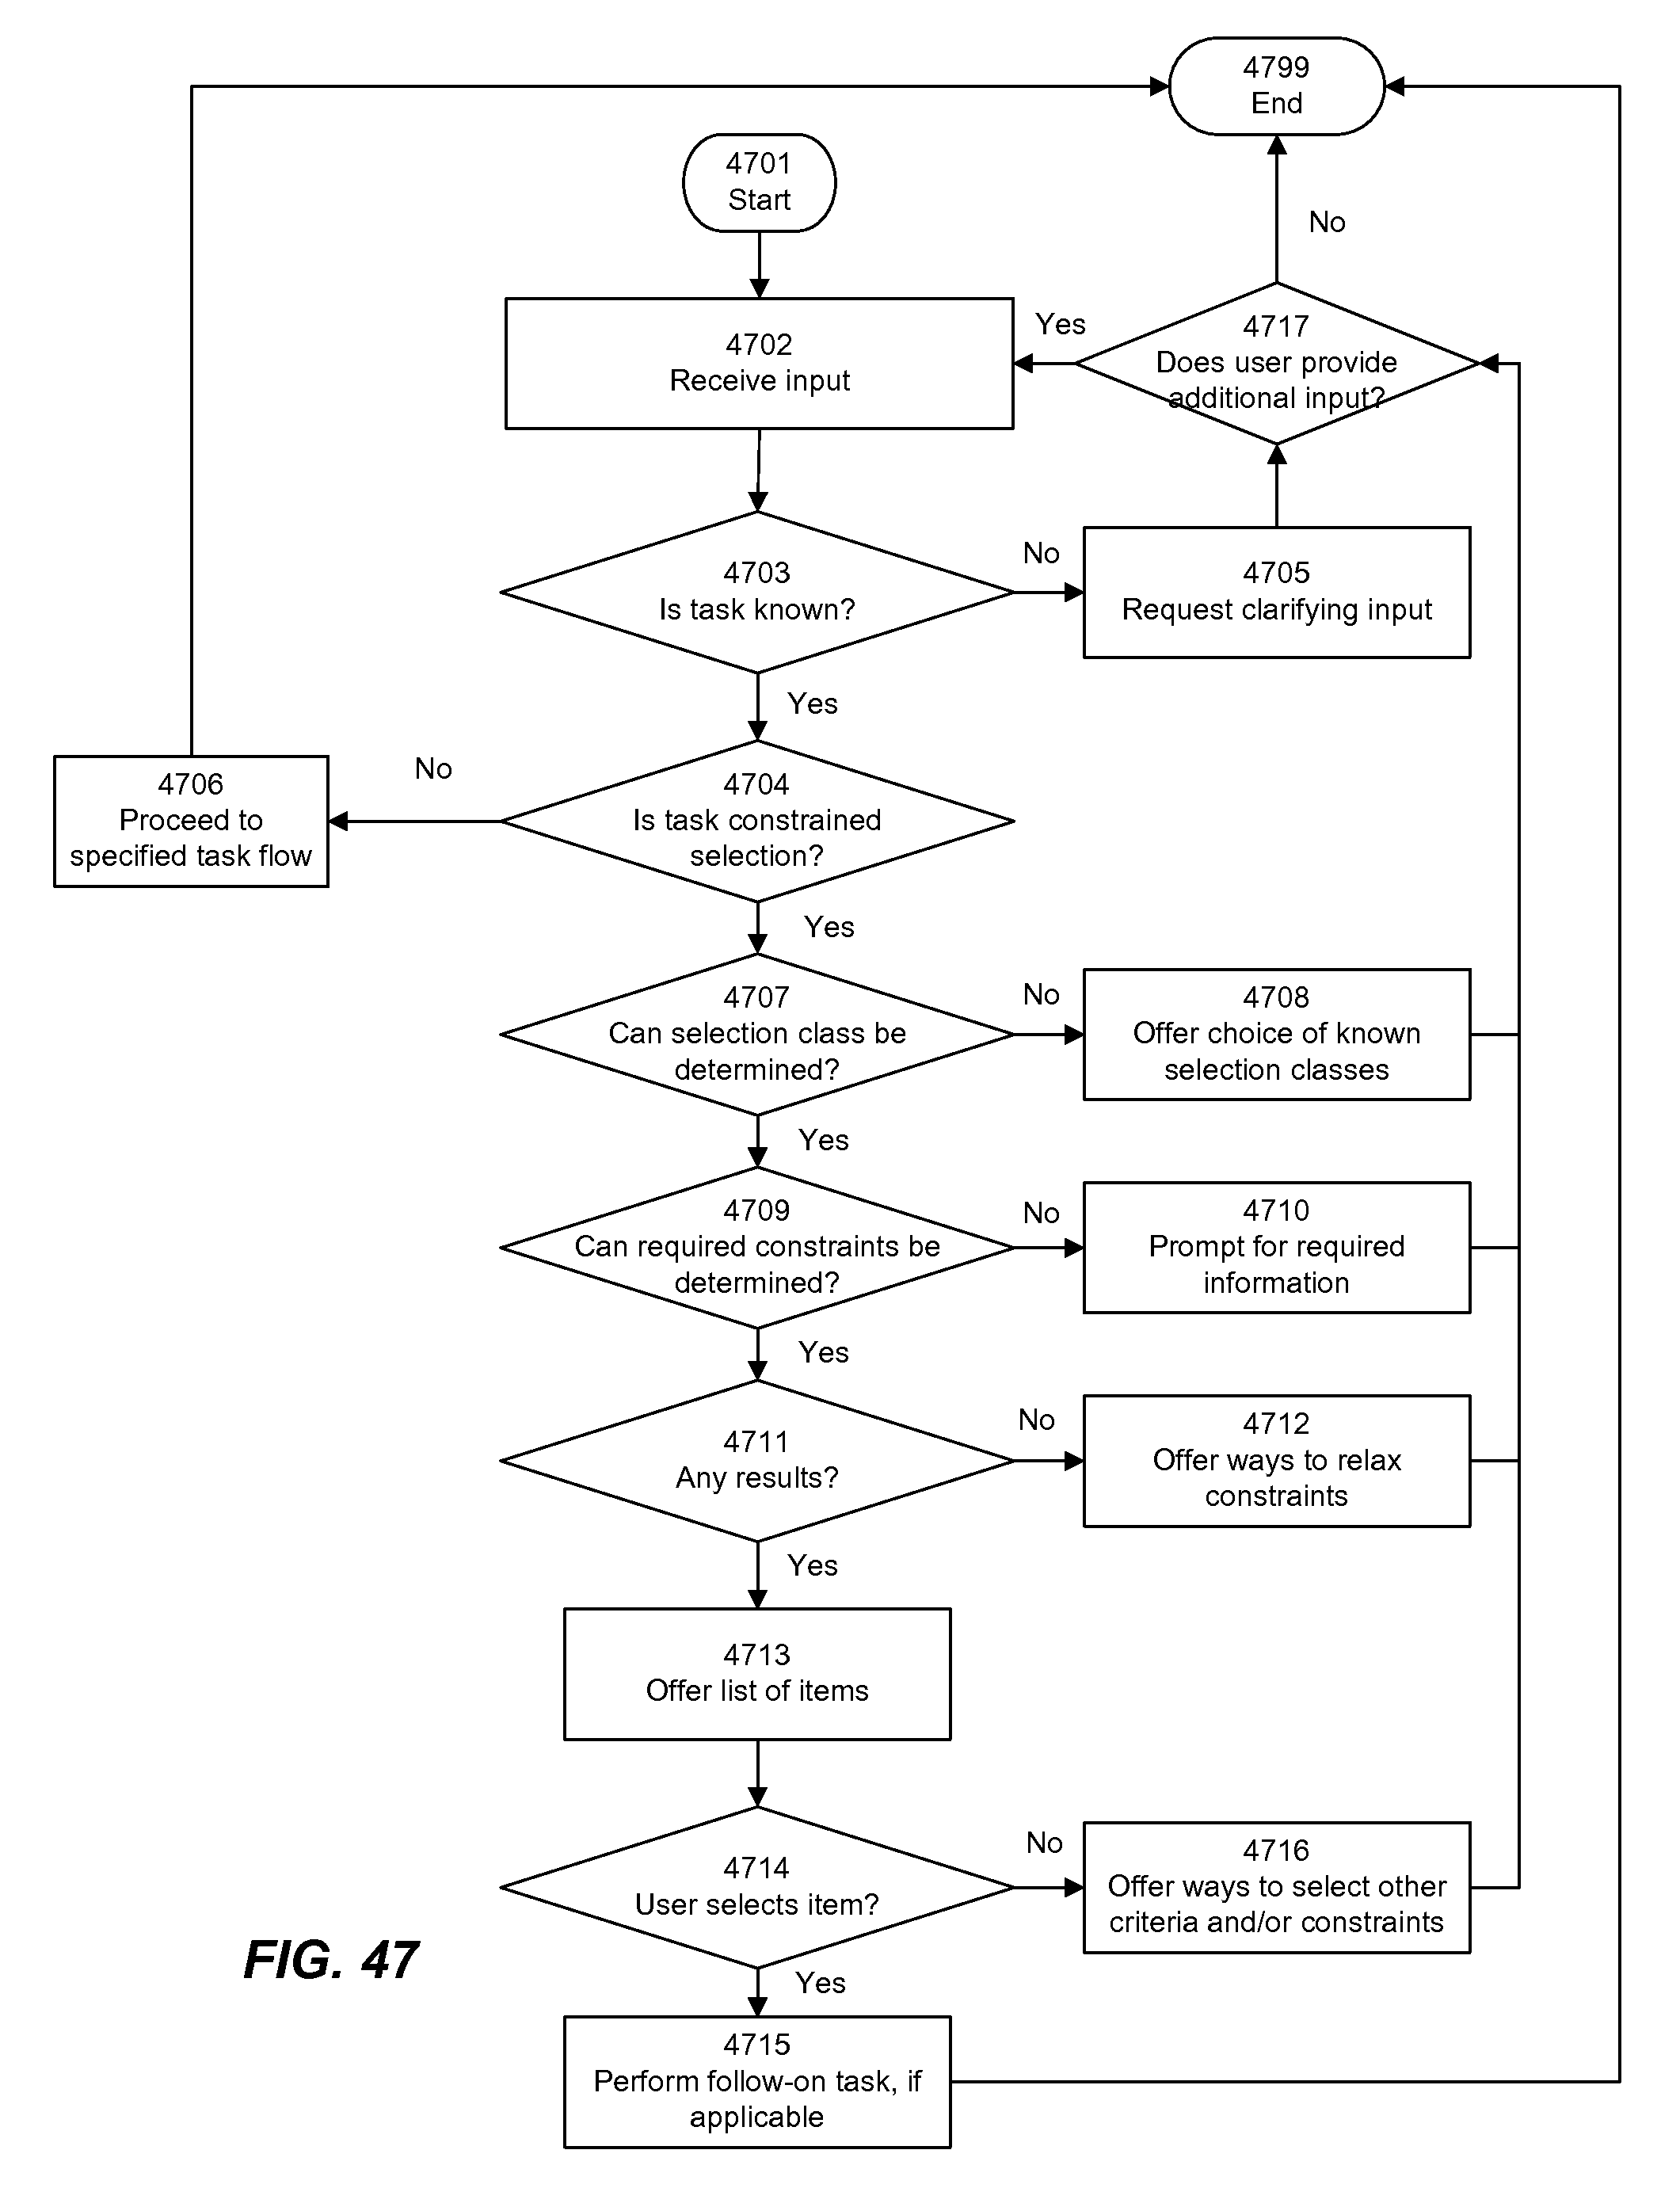 Us8892446b2 service orchestration for intelligent automated assistant patents